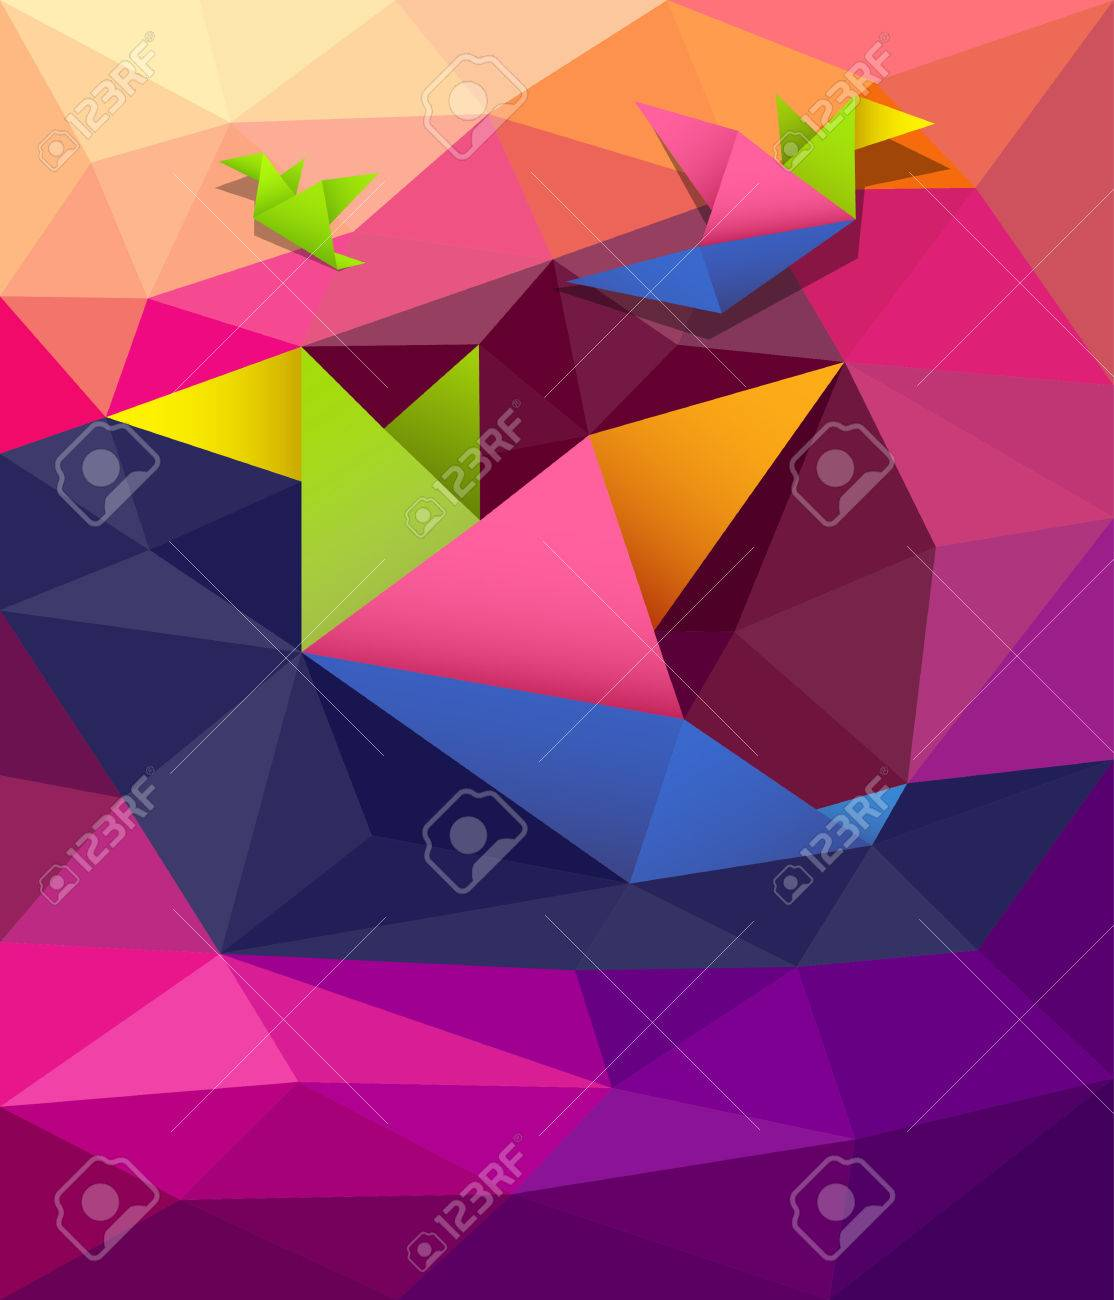 Colorful origami paper birds shape geometric design background Stock Vector - 27888256